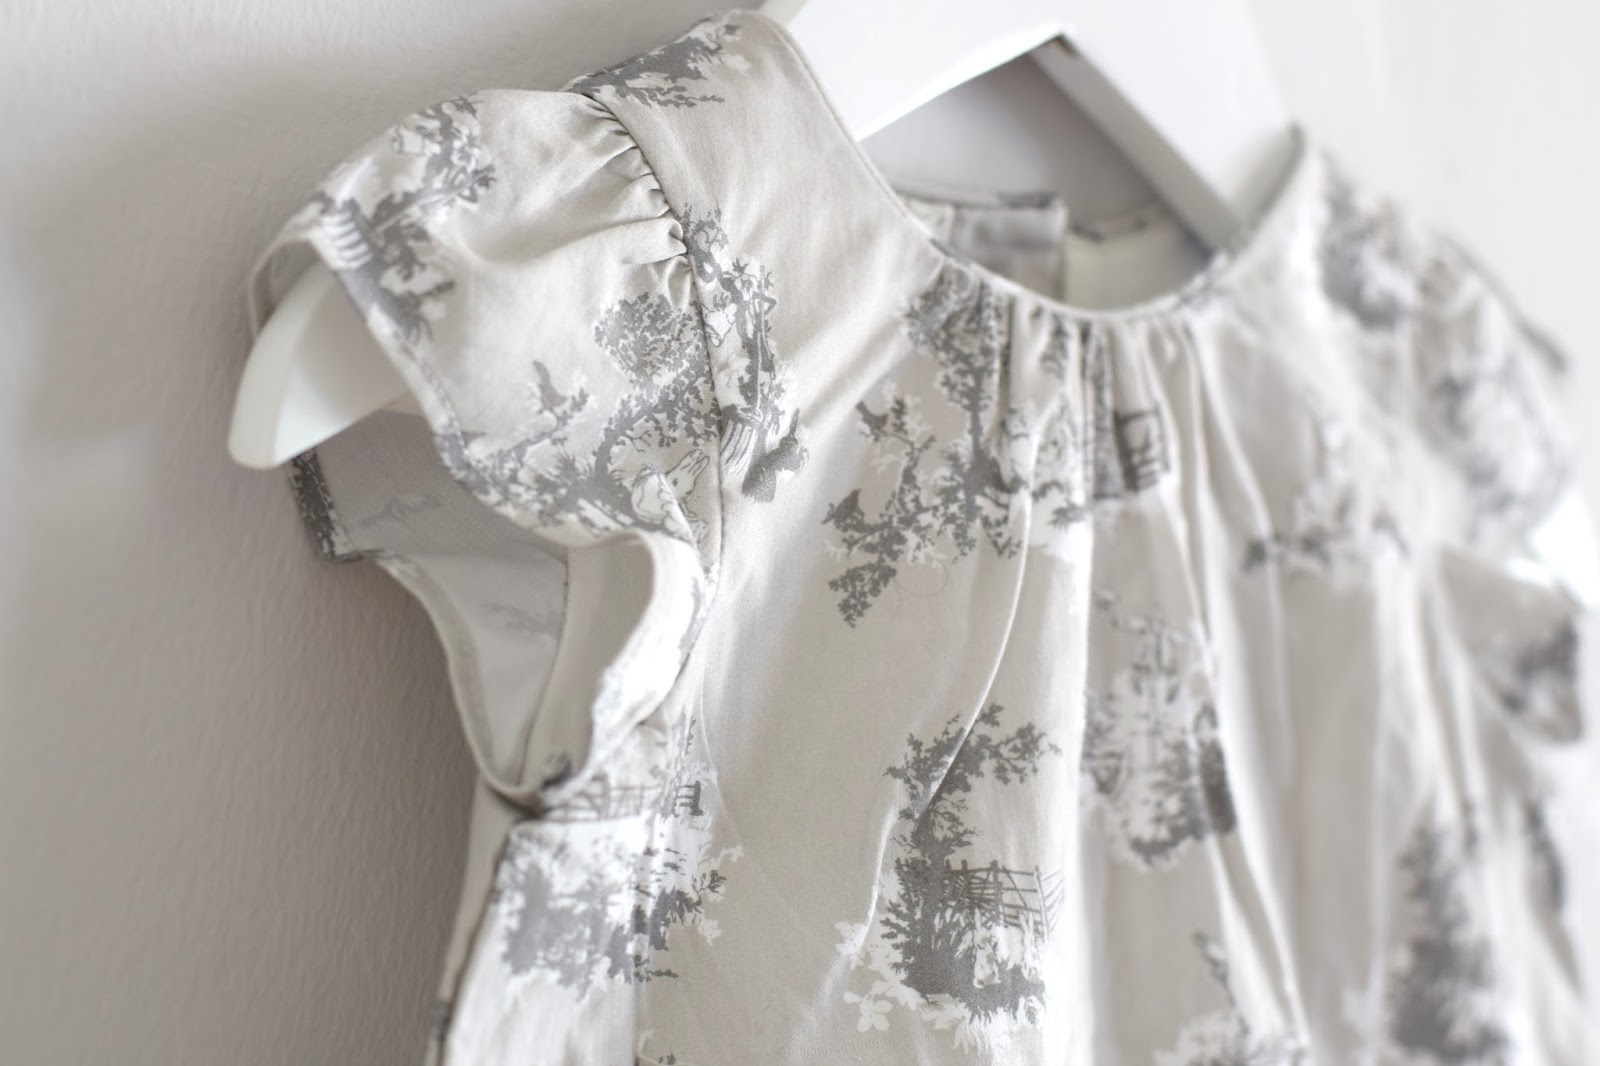 ee6106b33 My first pick was in keeping with my obsession with everything grey and  white! This adorable romper dress, which features idyllic prints of Peter  Rabbit ...